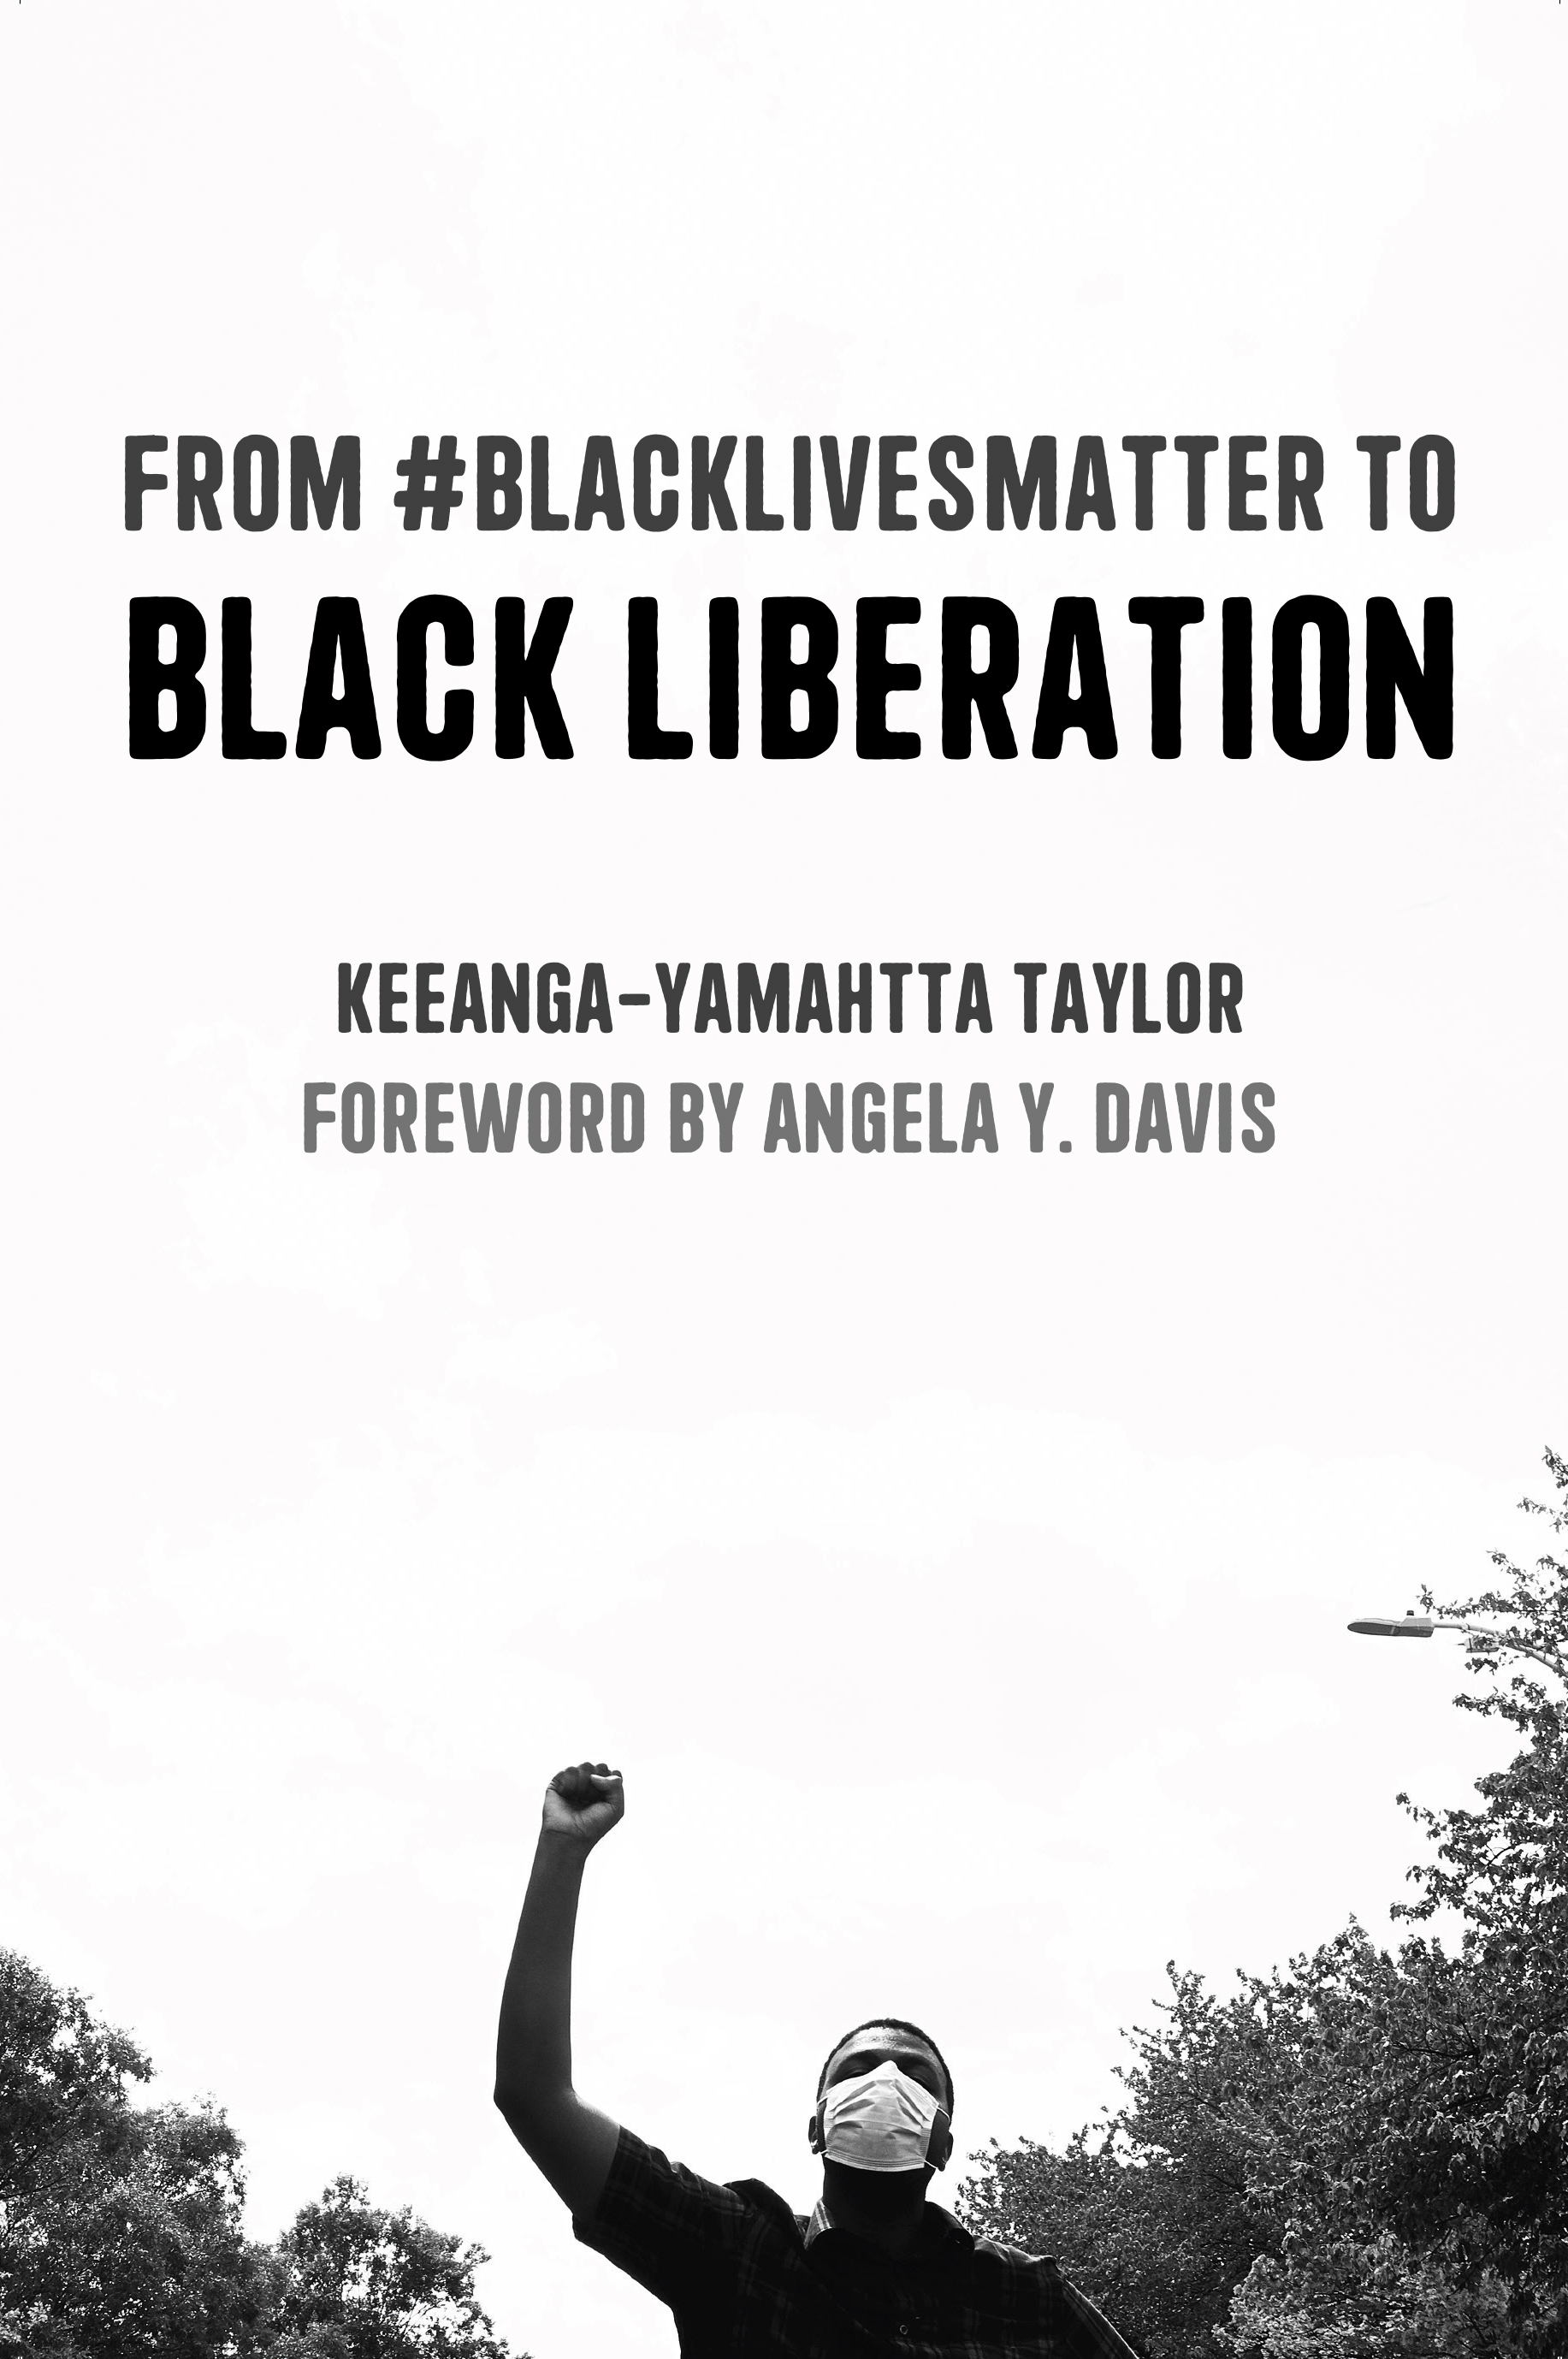 From_blm_to_black_liberation_cover_drafts_3_%281%29-